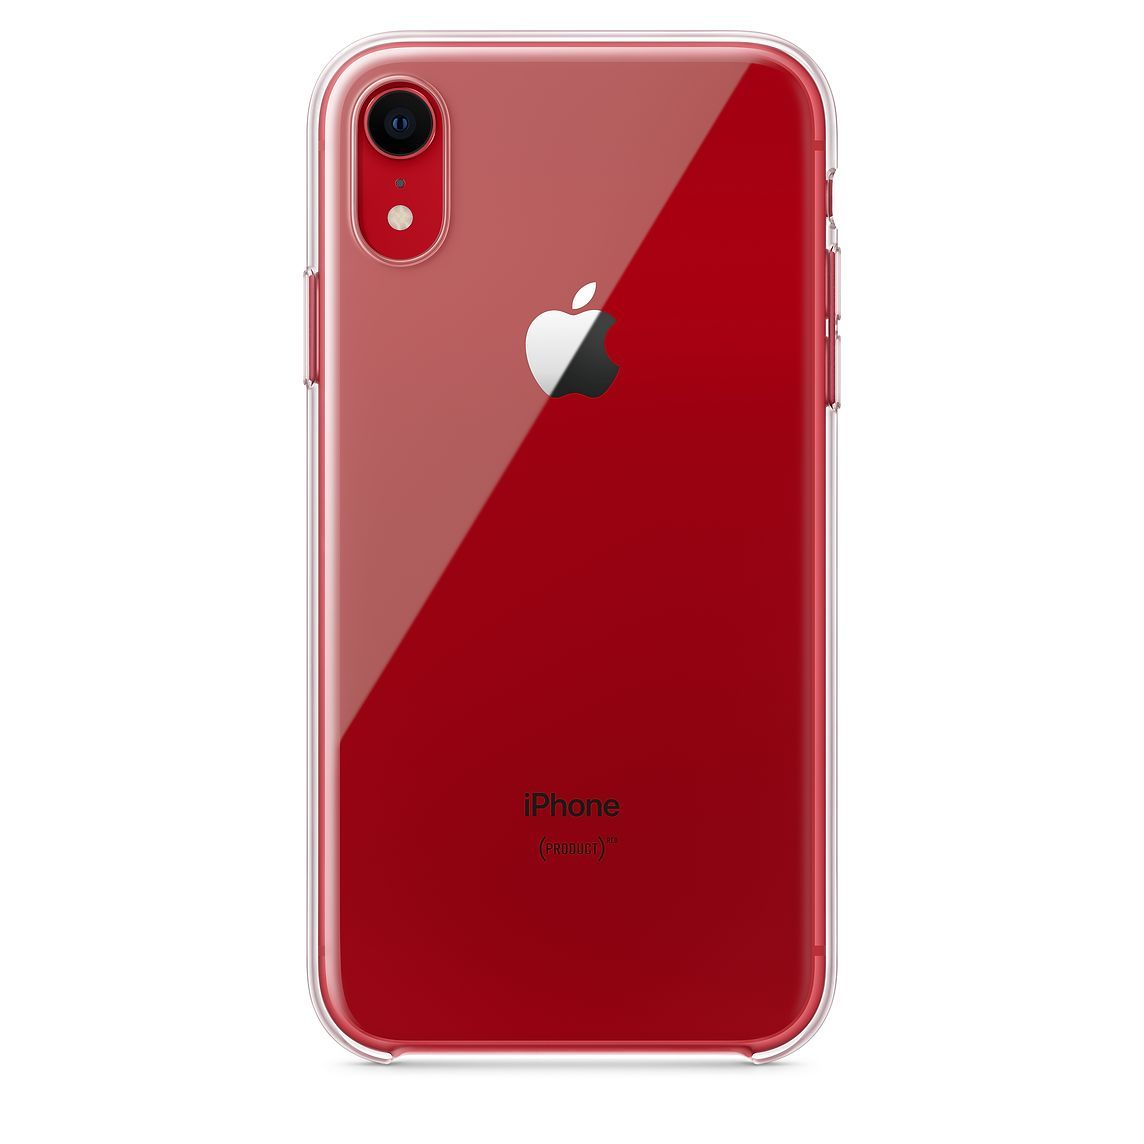 Apple finally releases clear case for phone xr with